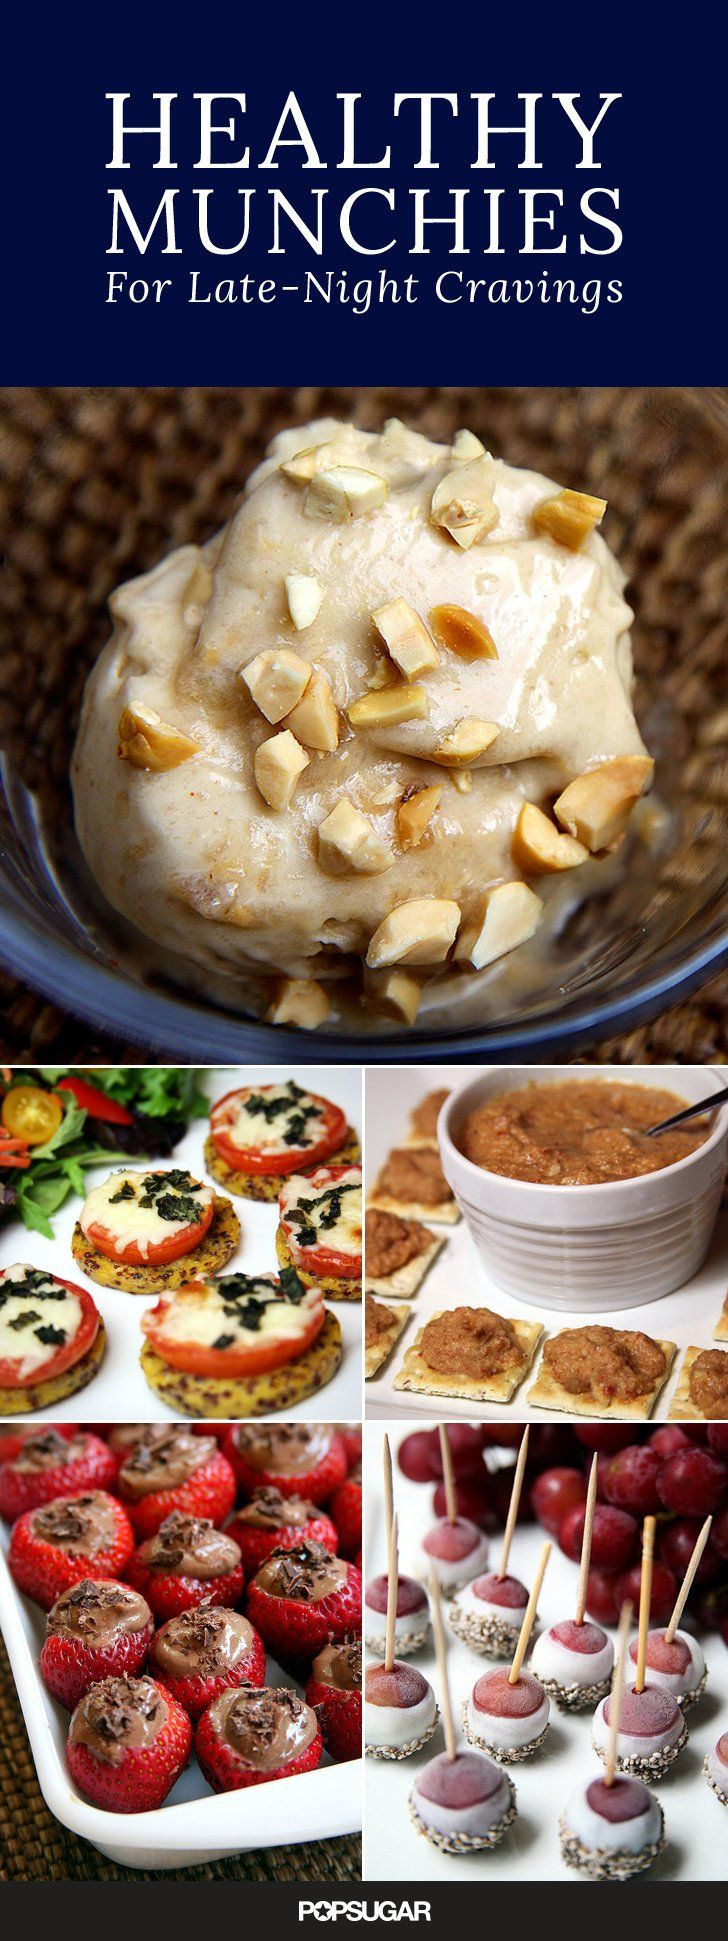 12 Healthy Snacks That Are Perfect For The Midnight Munchies